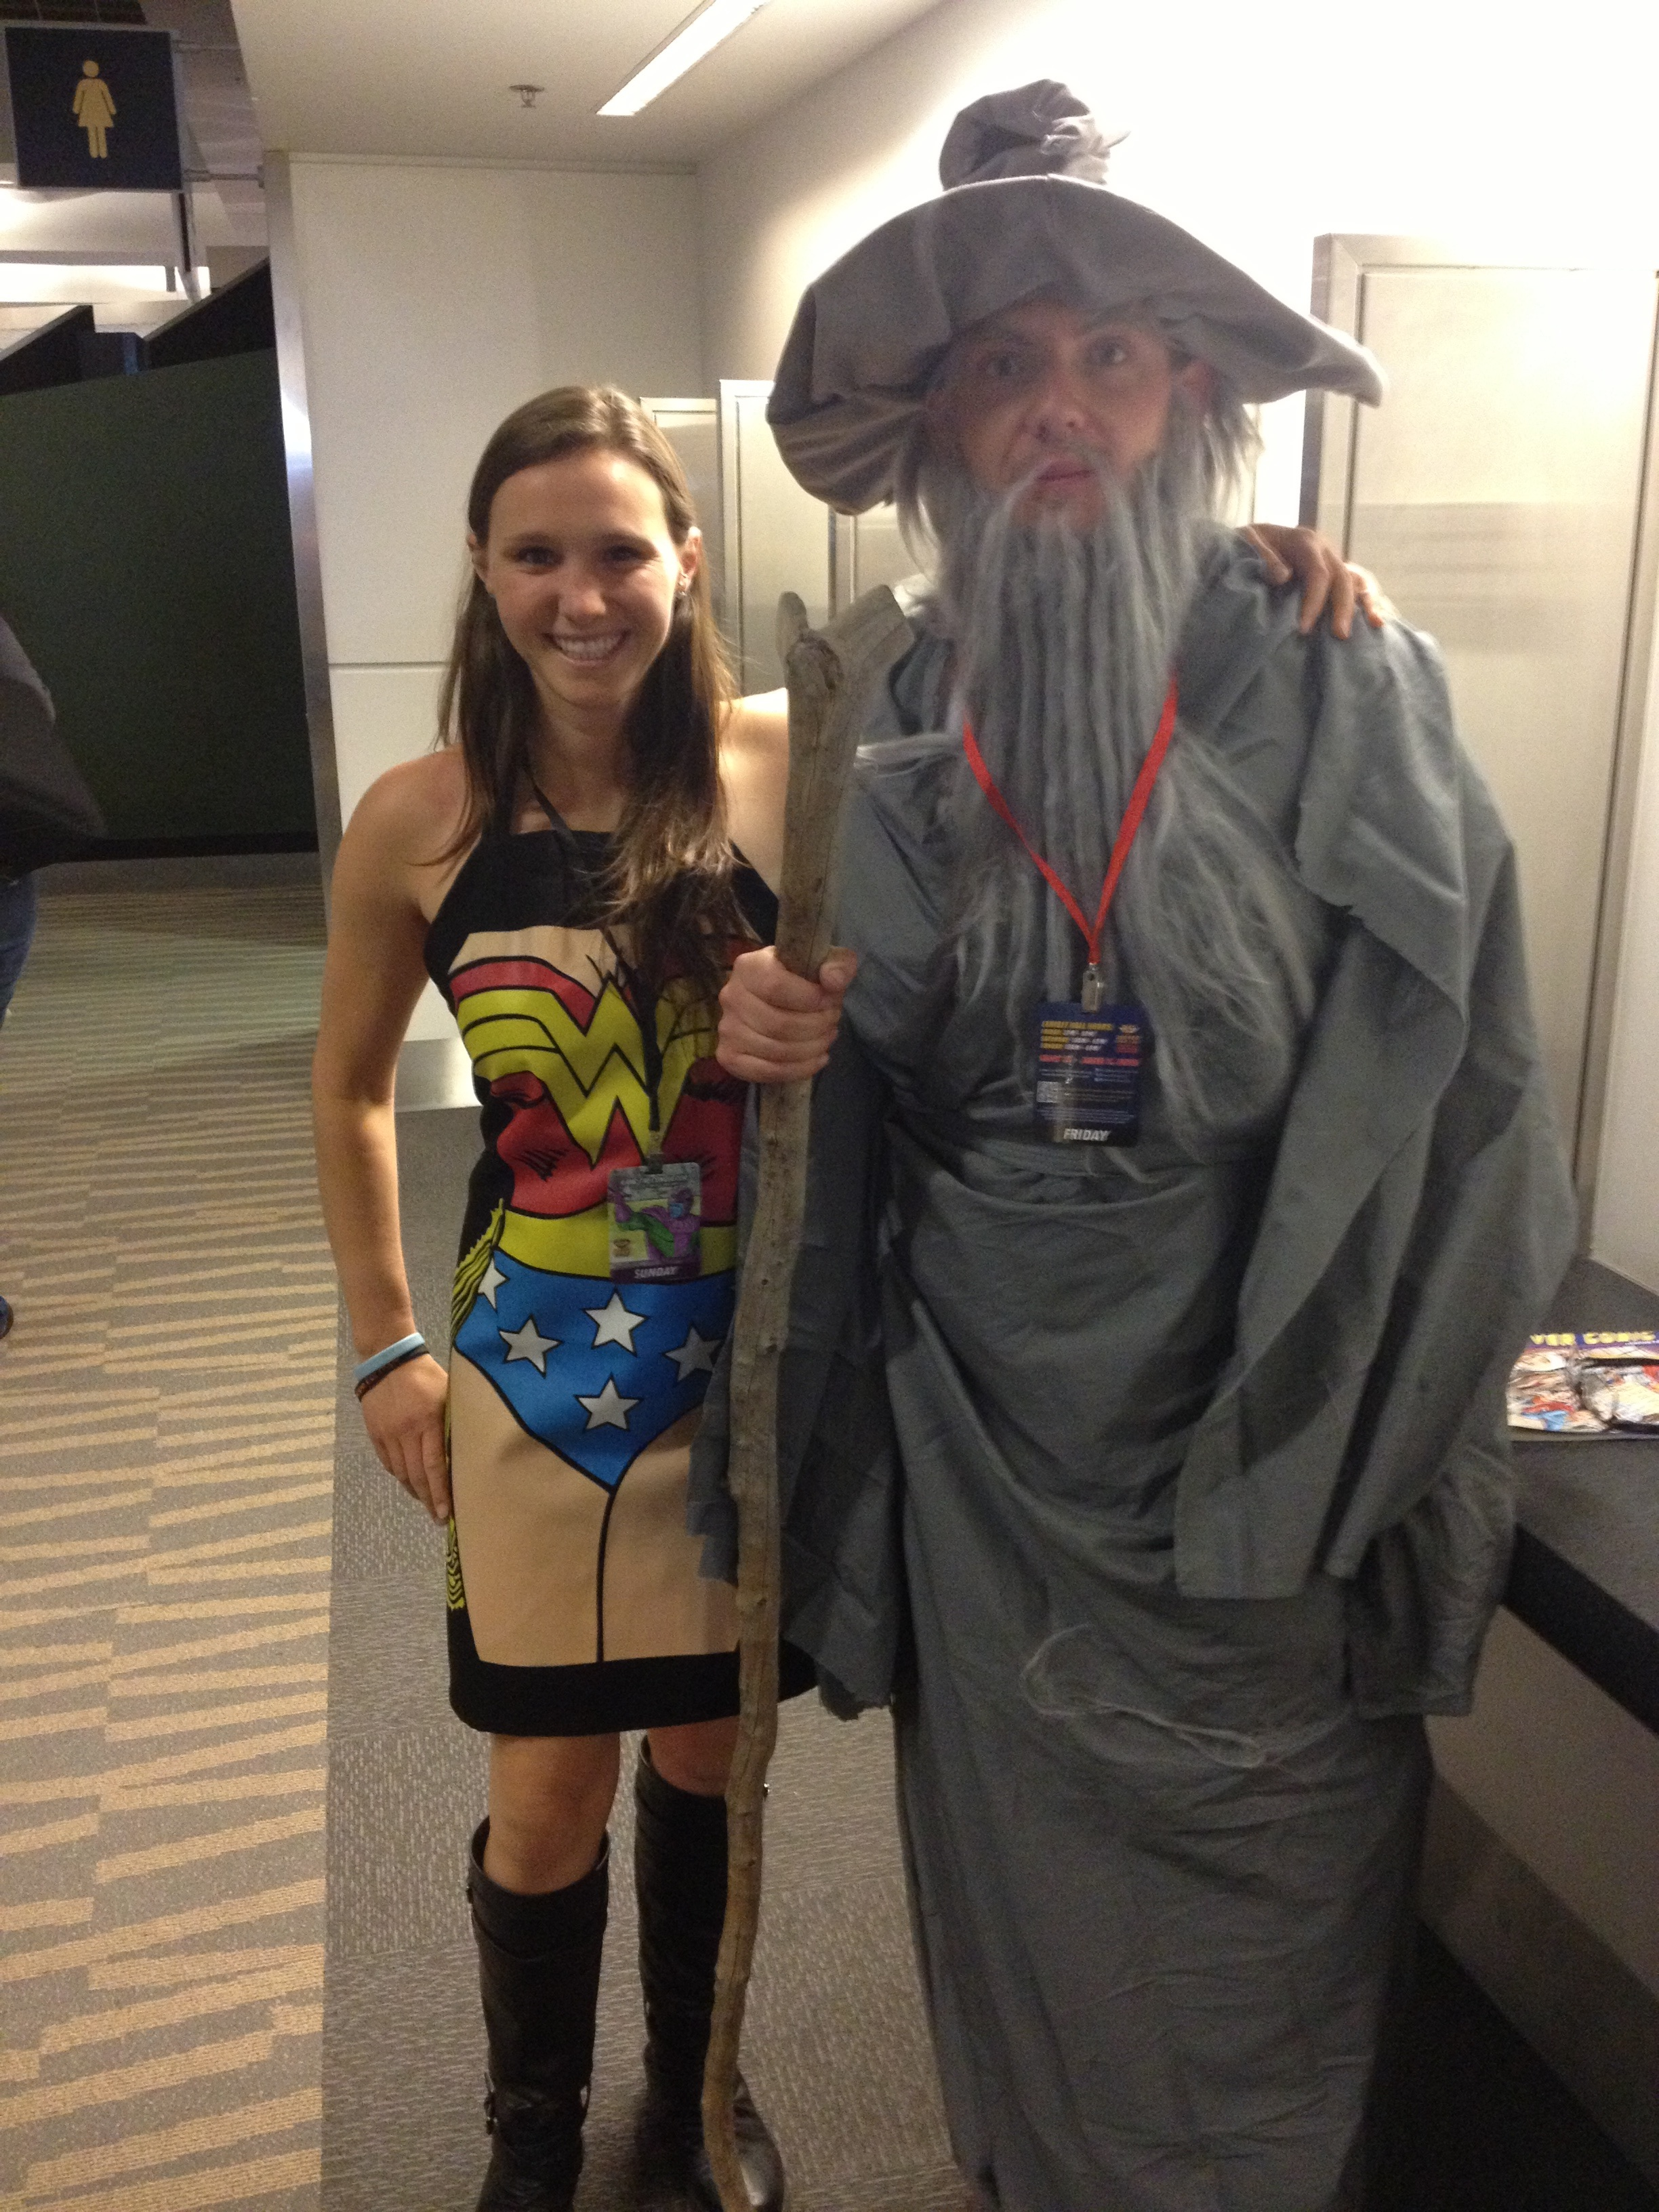 Gandalf! Literally hunted him down the whole time and finally found him